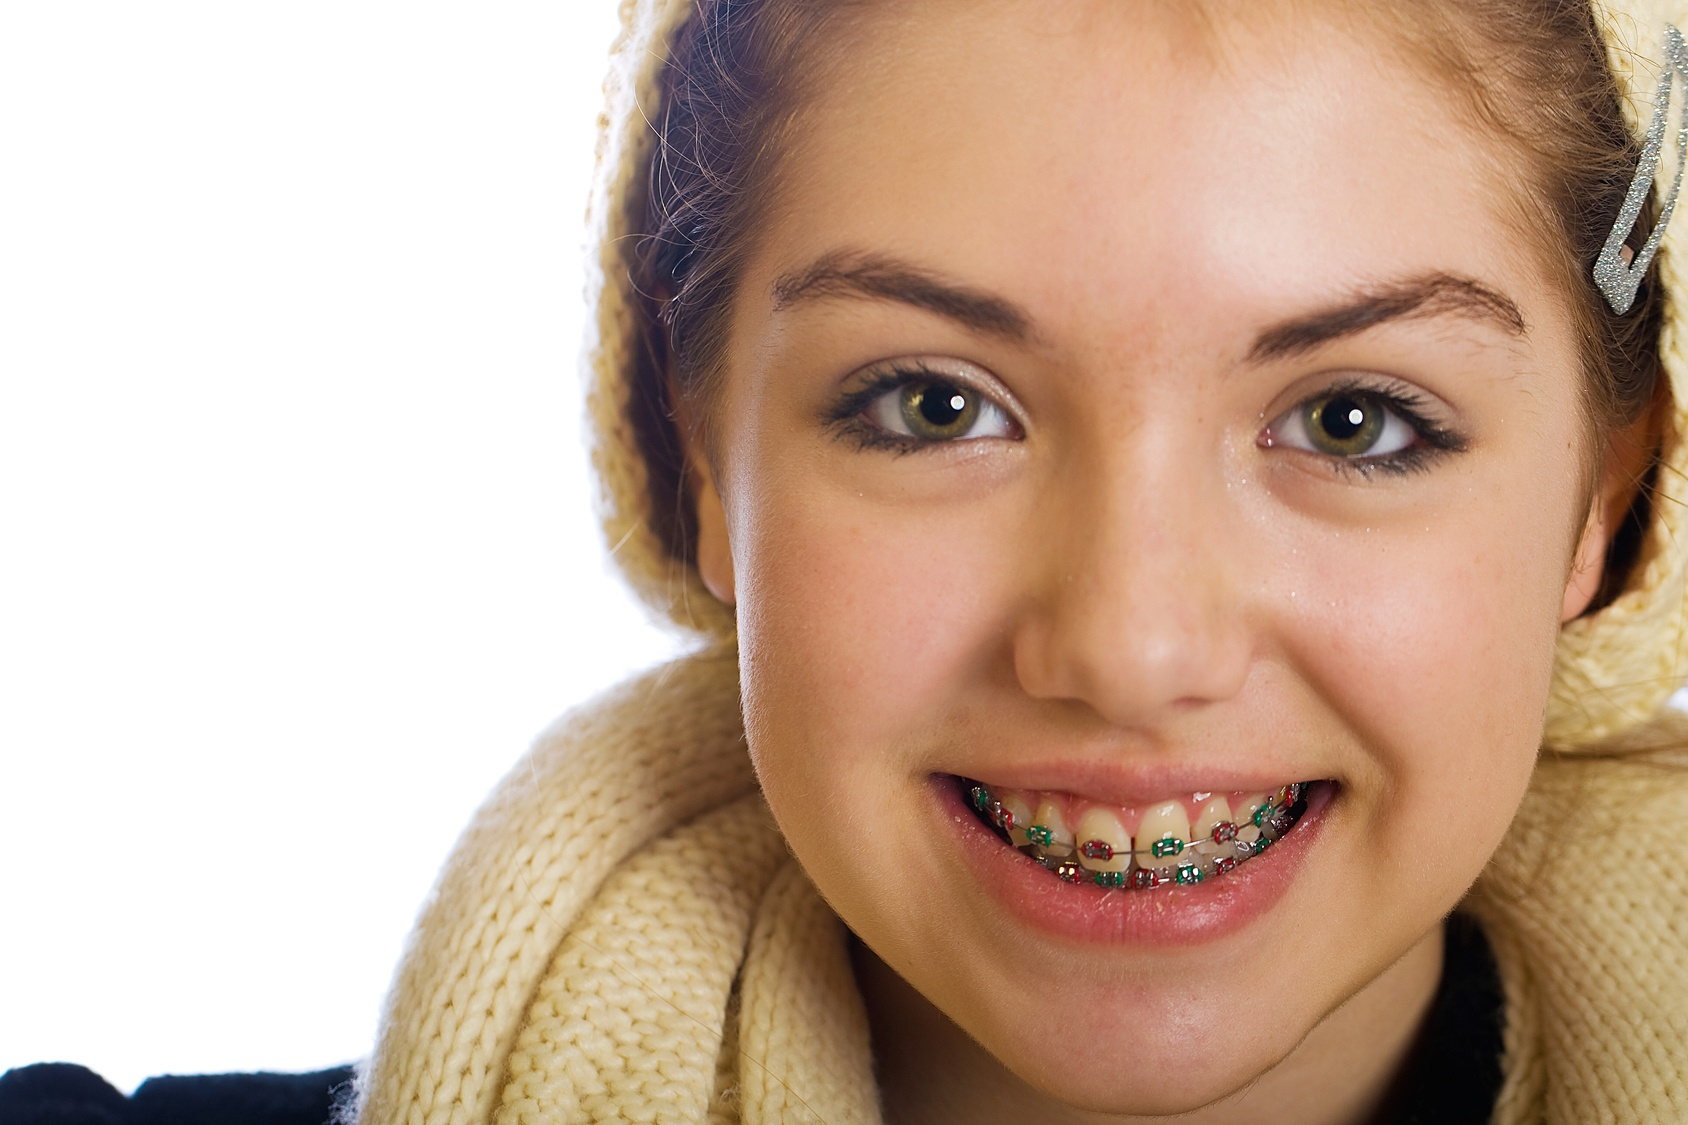 Orthodontics for kids